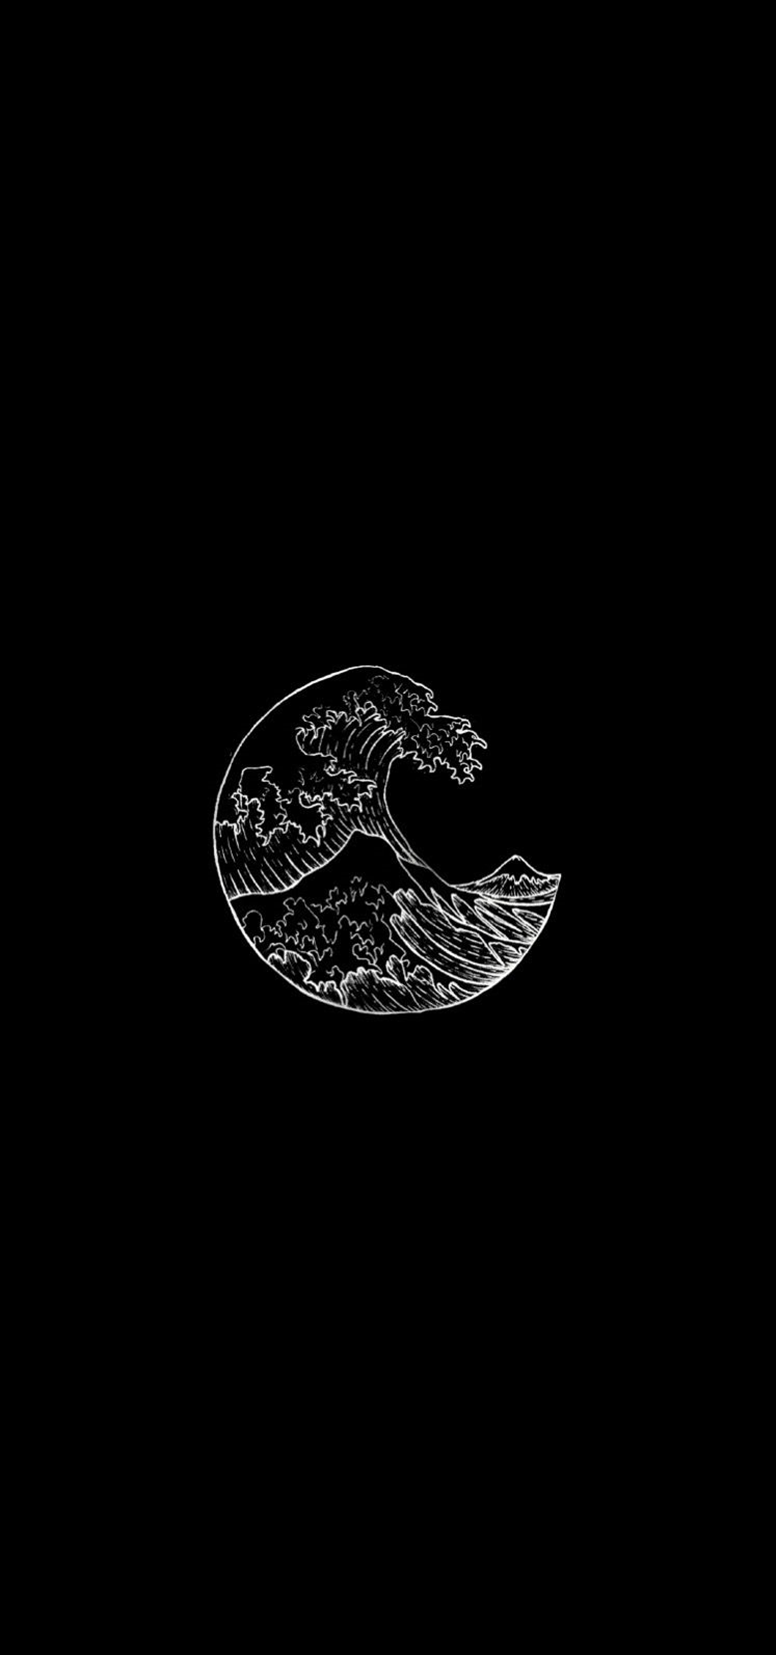 Aesthetic Dark Tumblr Backgrounds Tumblr Backgrounds 300x300 In 2020 Waves Wallpaper Iphone Black Aesthetic Wallpaper Black Phone Wallpaper